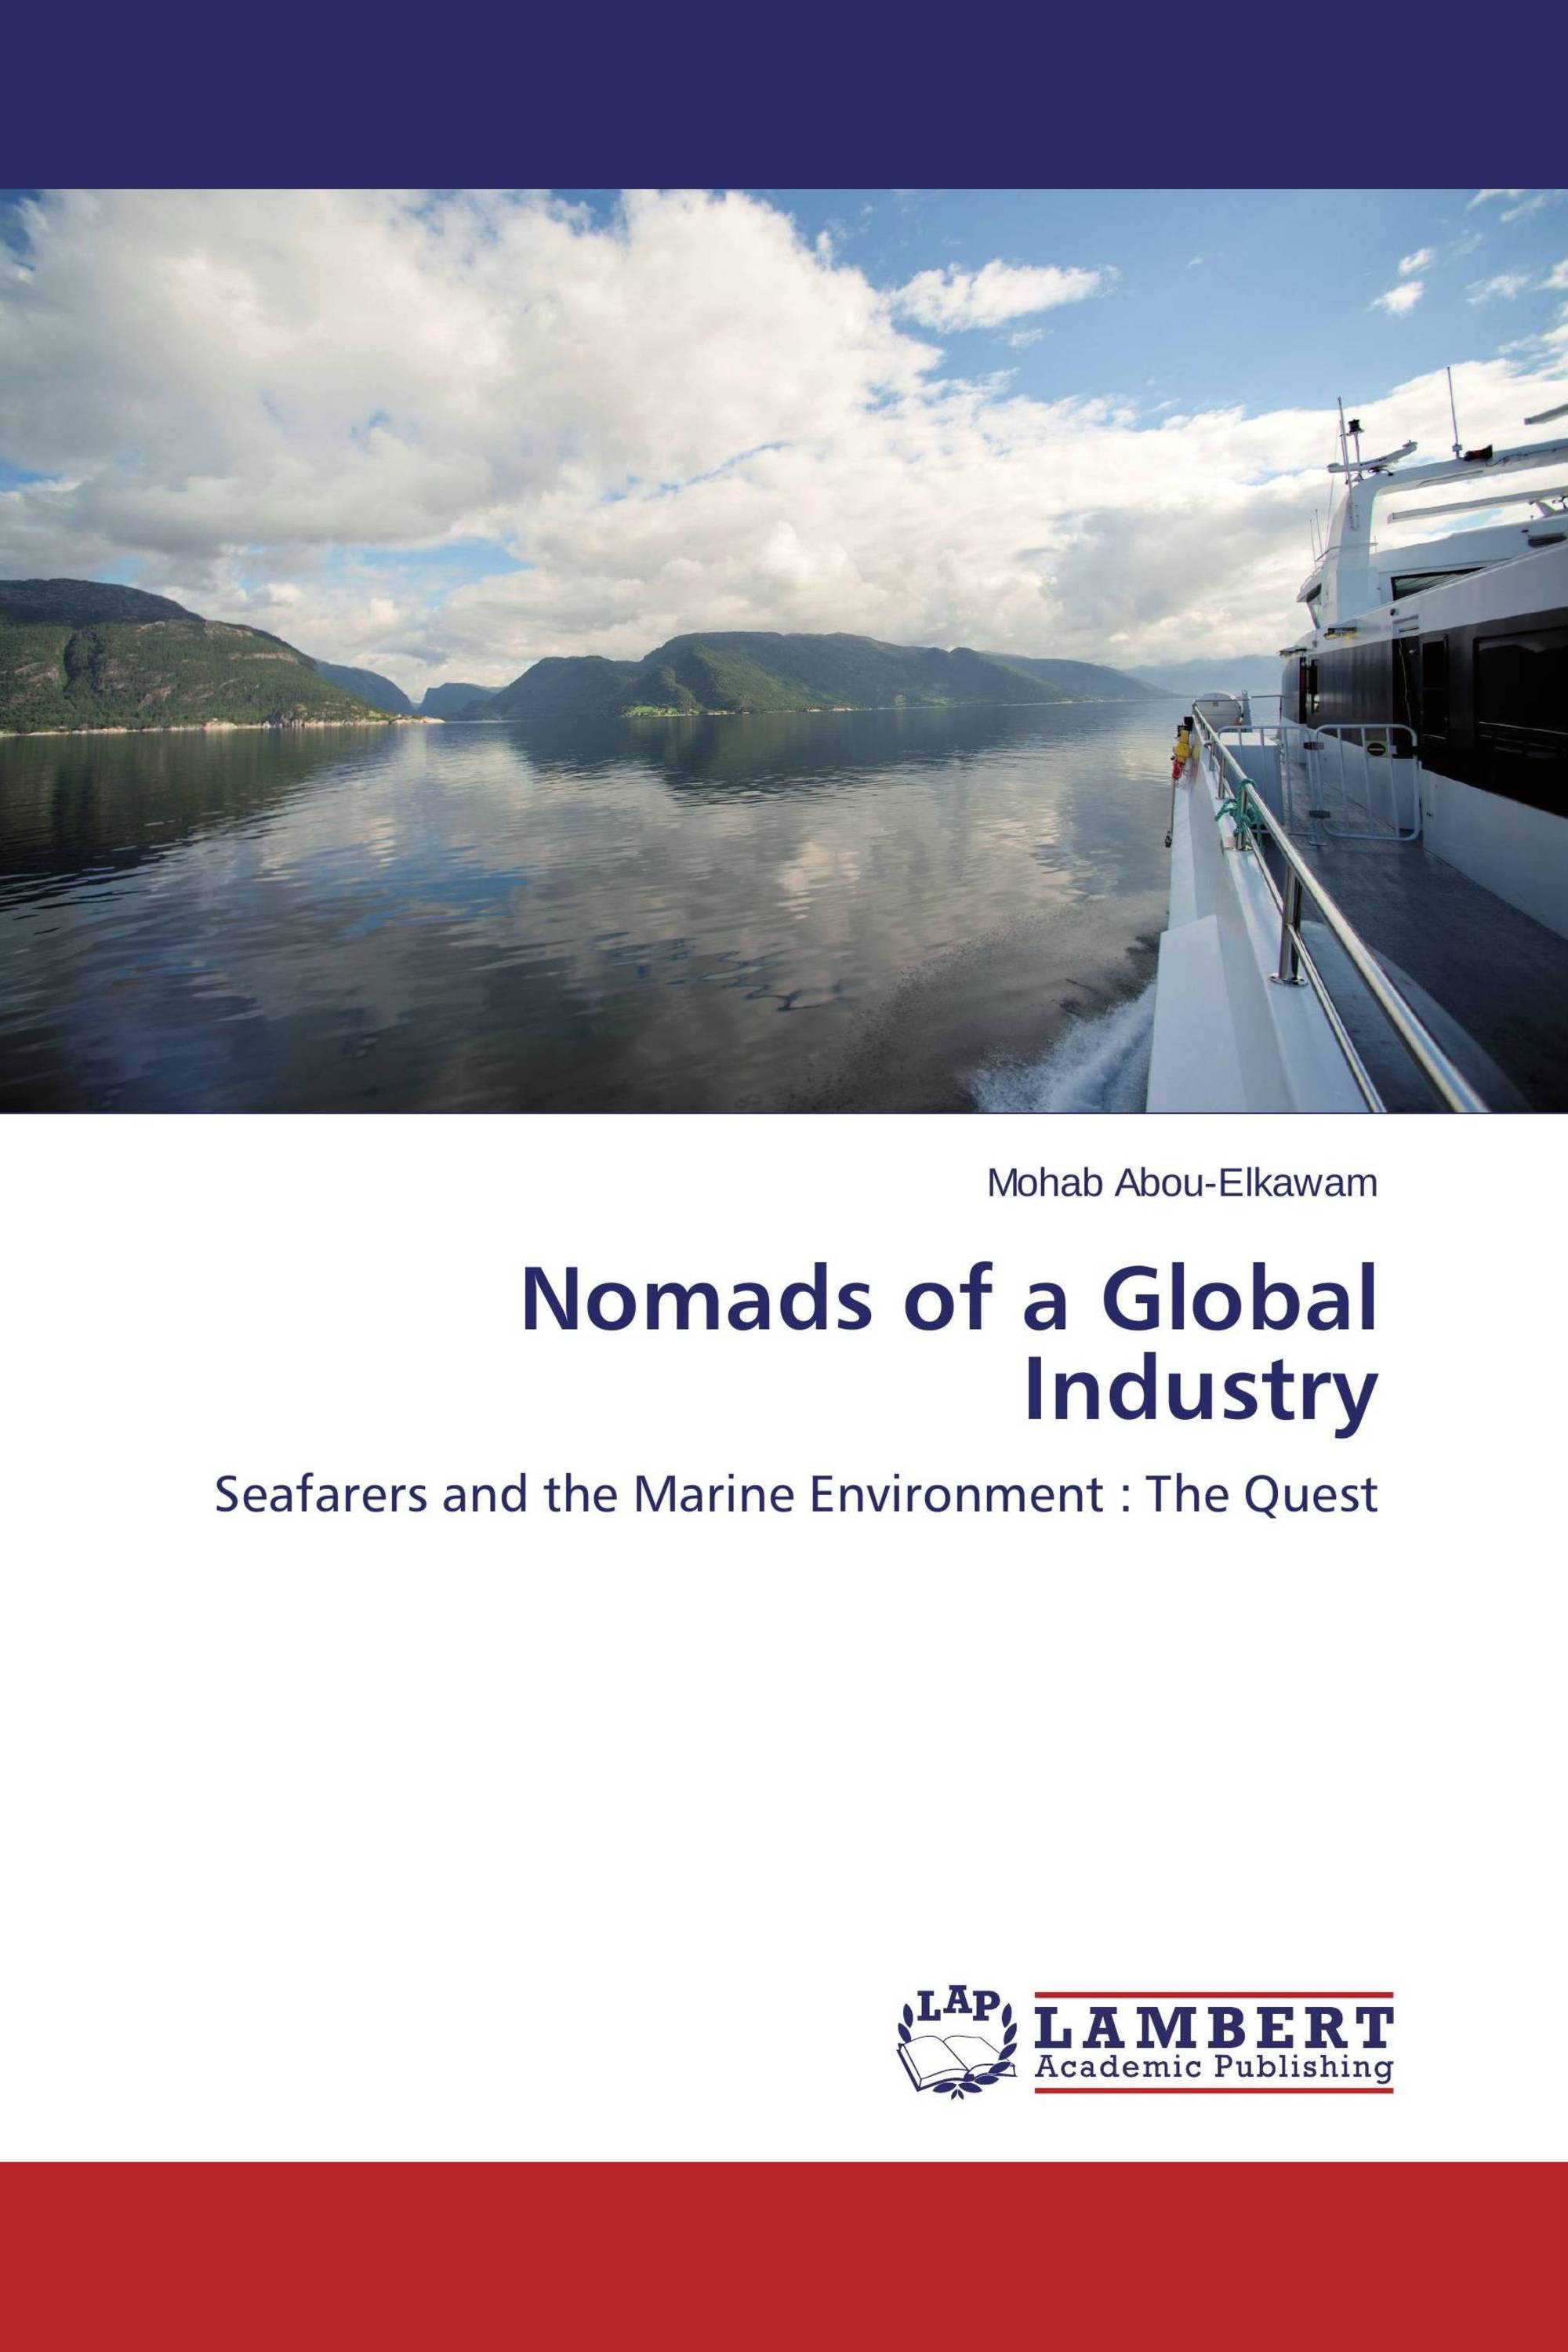 Nomads of a Global Industry